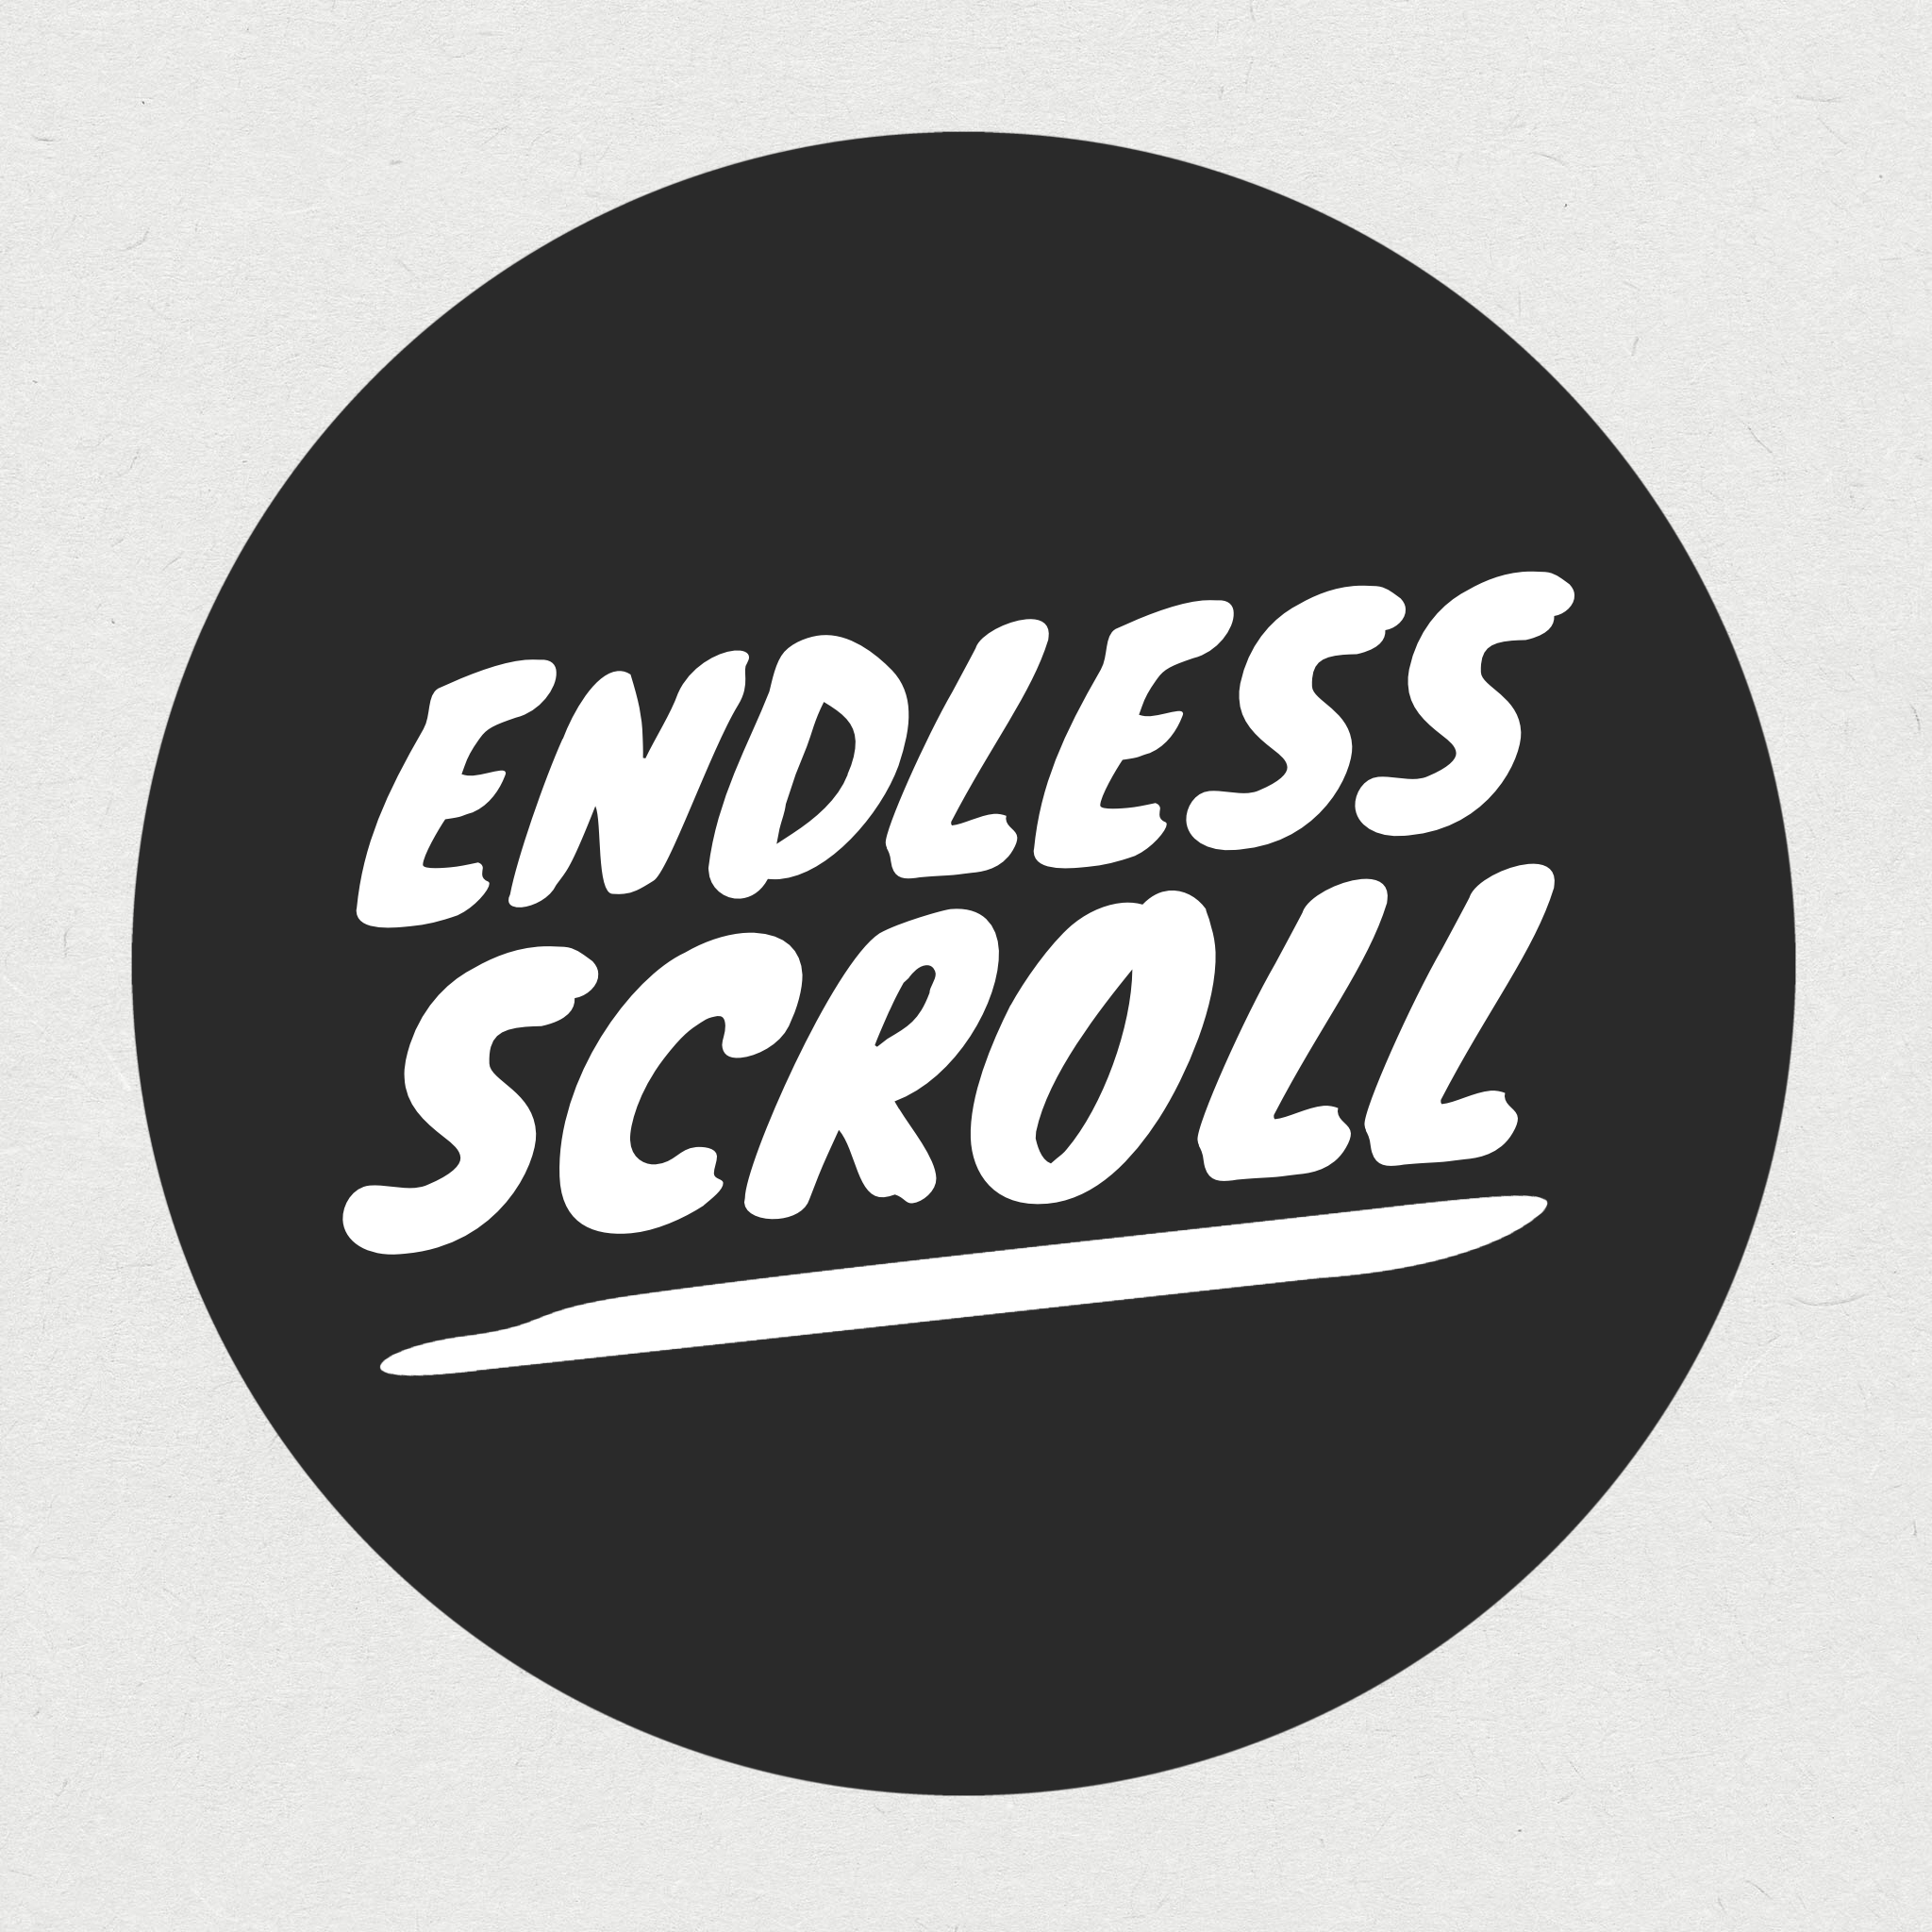 endless scroll